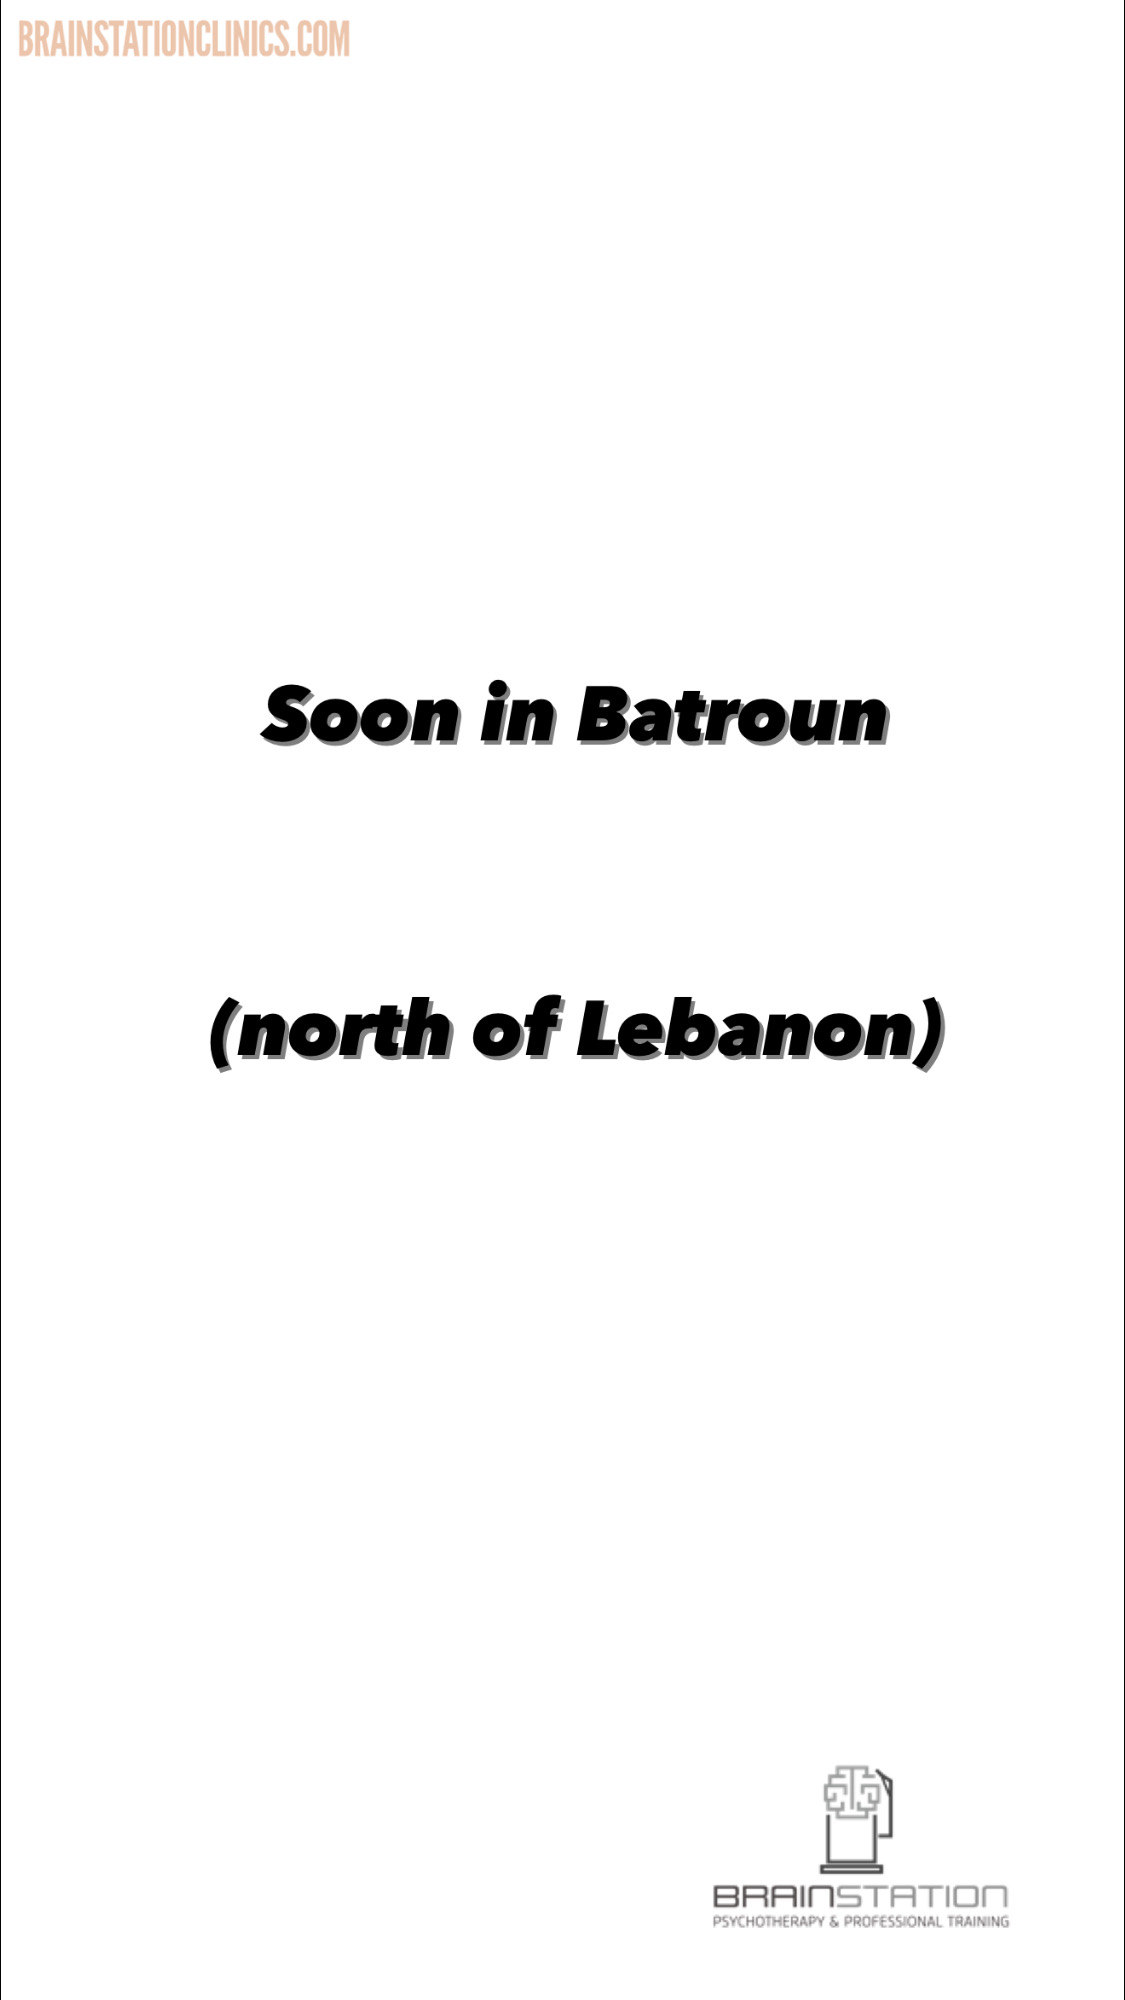 soon in Batroun